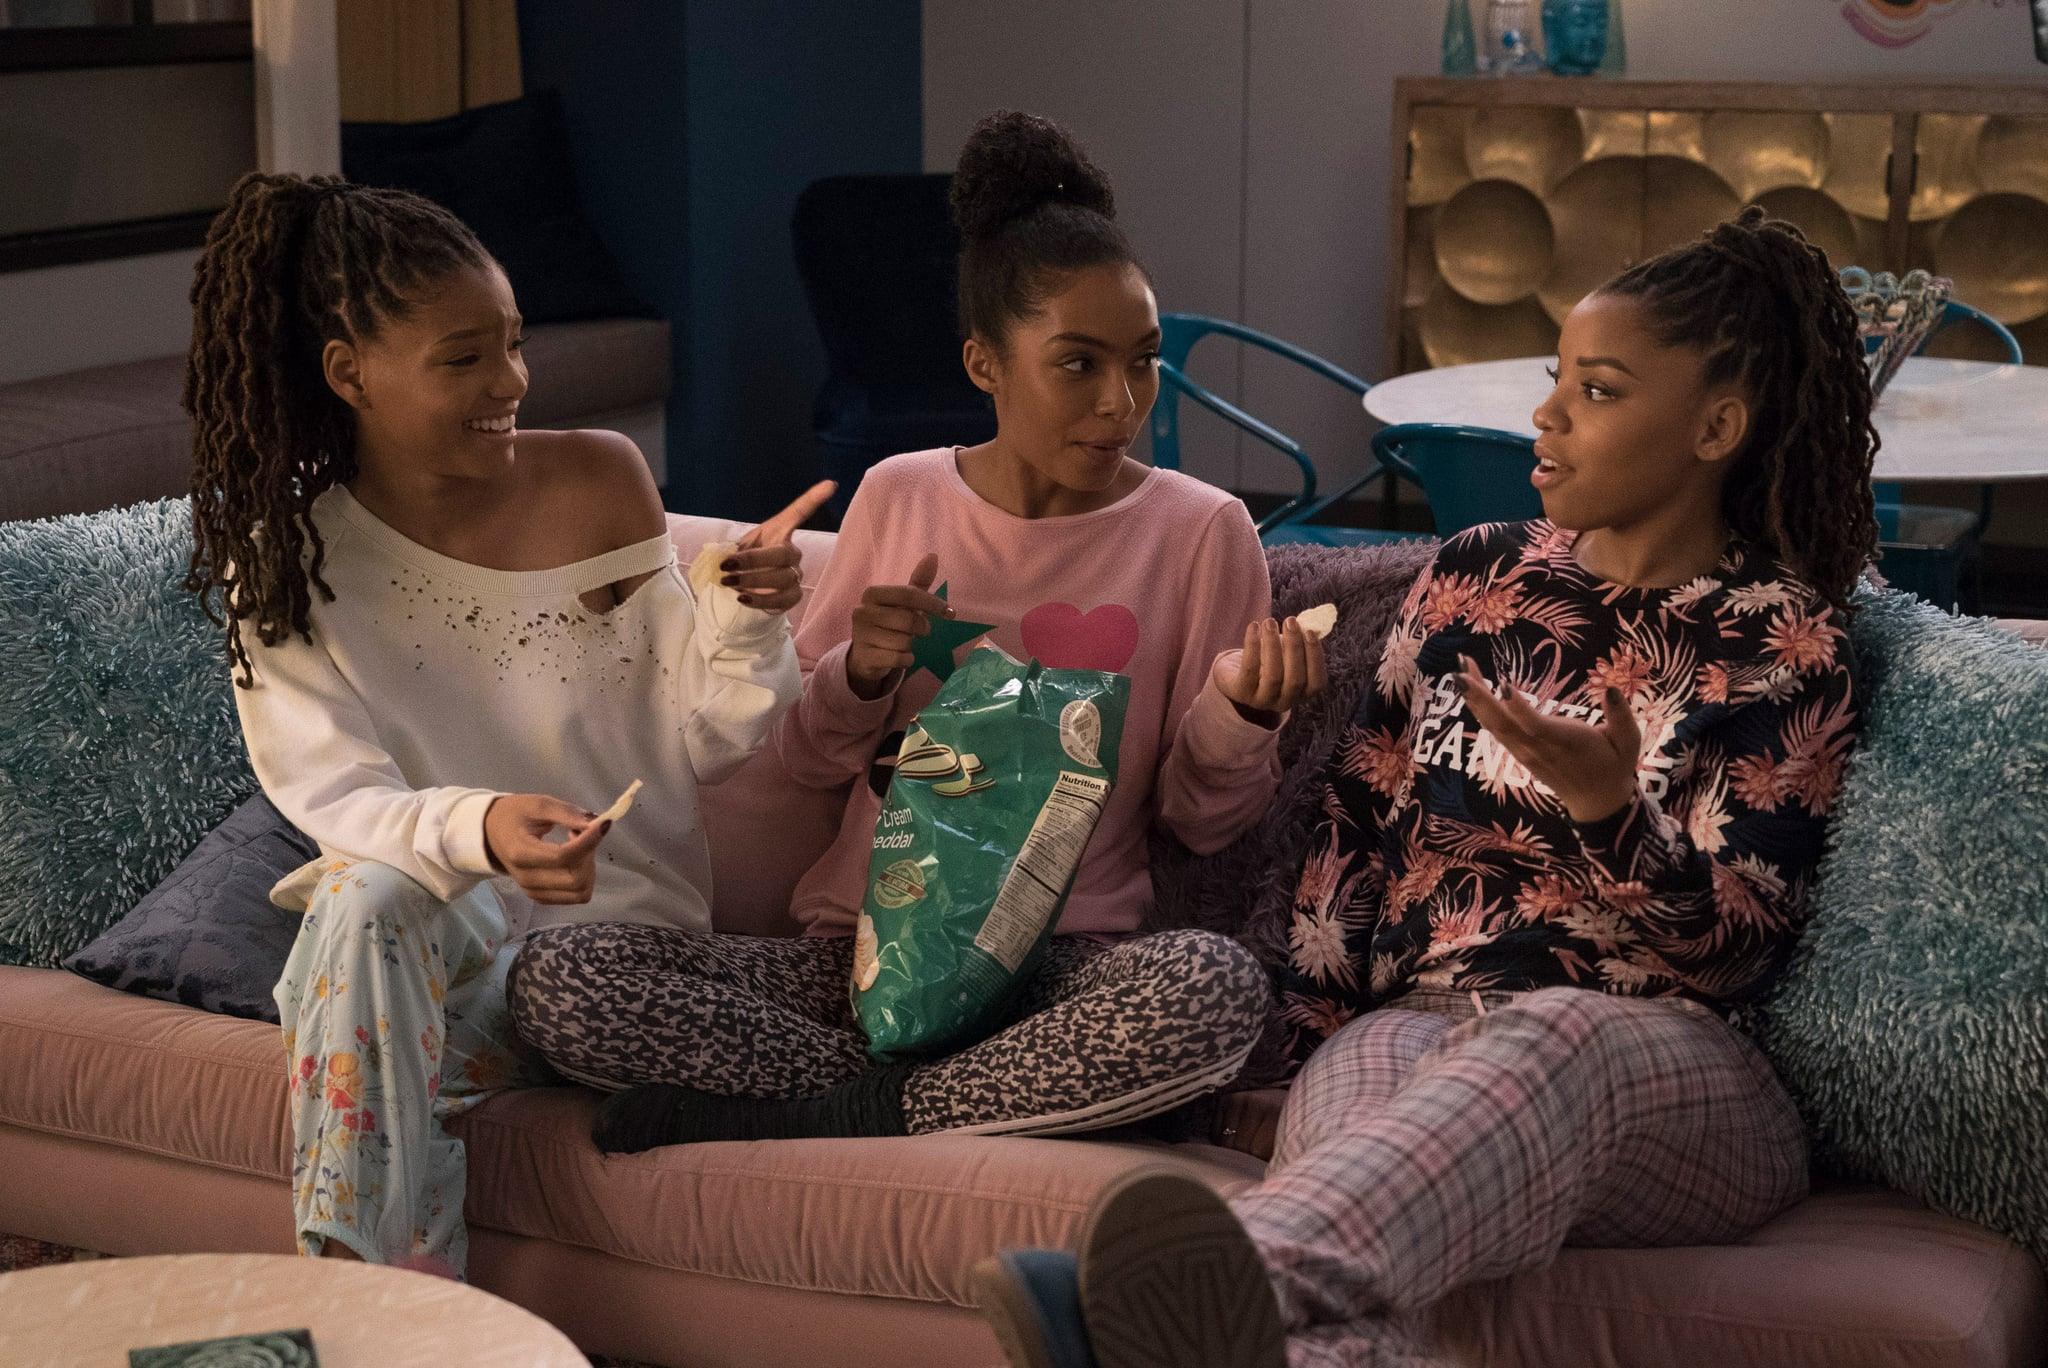 GROWN-ISH, Halle Bailey, Yara Shahidi, Chloe Bailey in 'Better', (Season 2, Episode 202, aired January 2, 2019), ph: Tony Rivetti / Freeform / courtesy Everett Collection